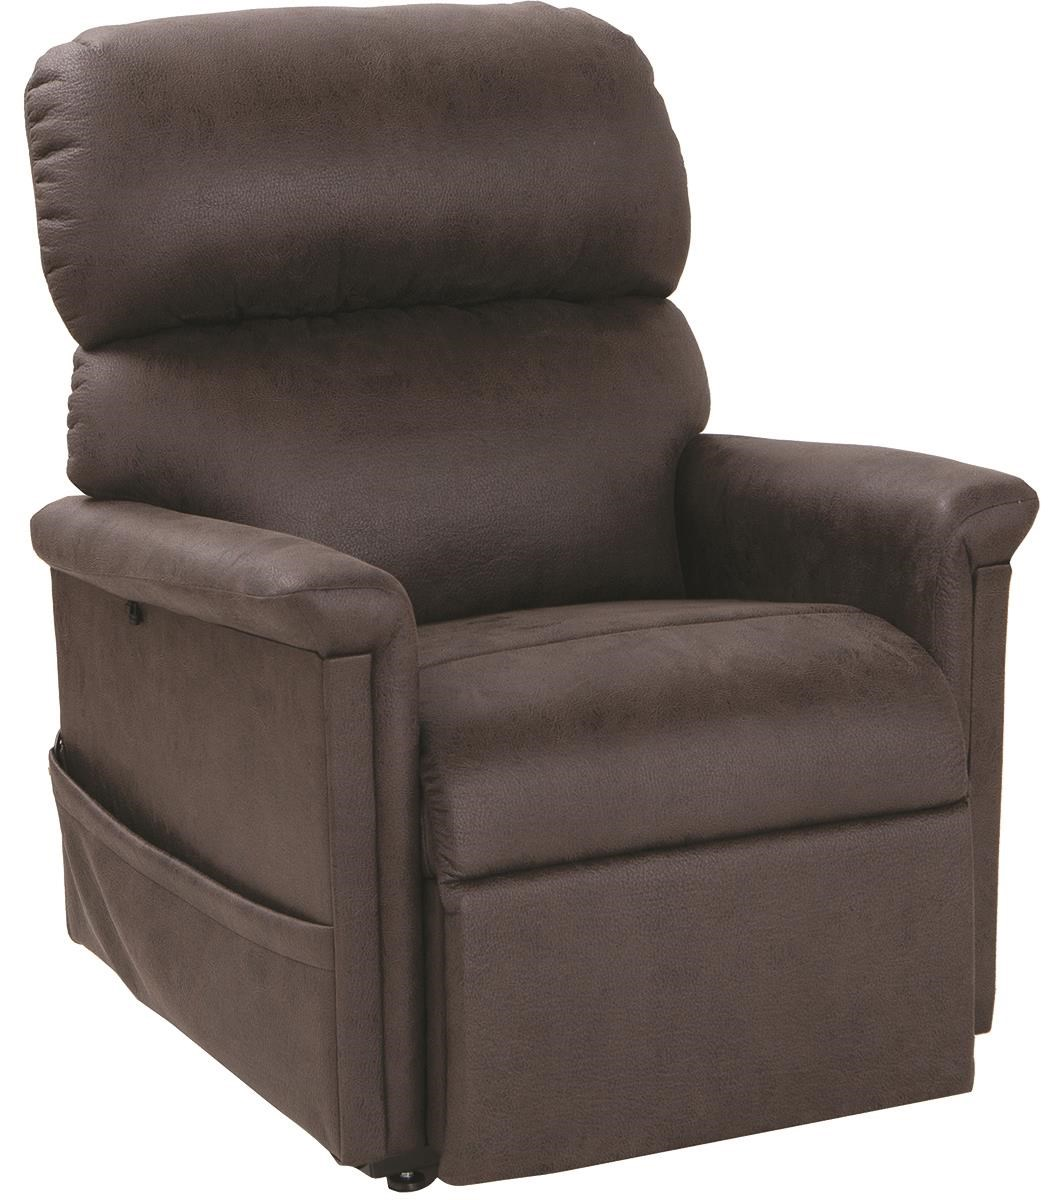 Lift Chair Power Lift Chair W/Heat and Massage by UltraComfort at Darvin Furniture